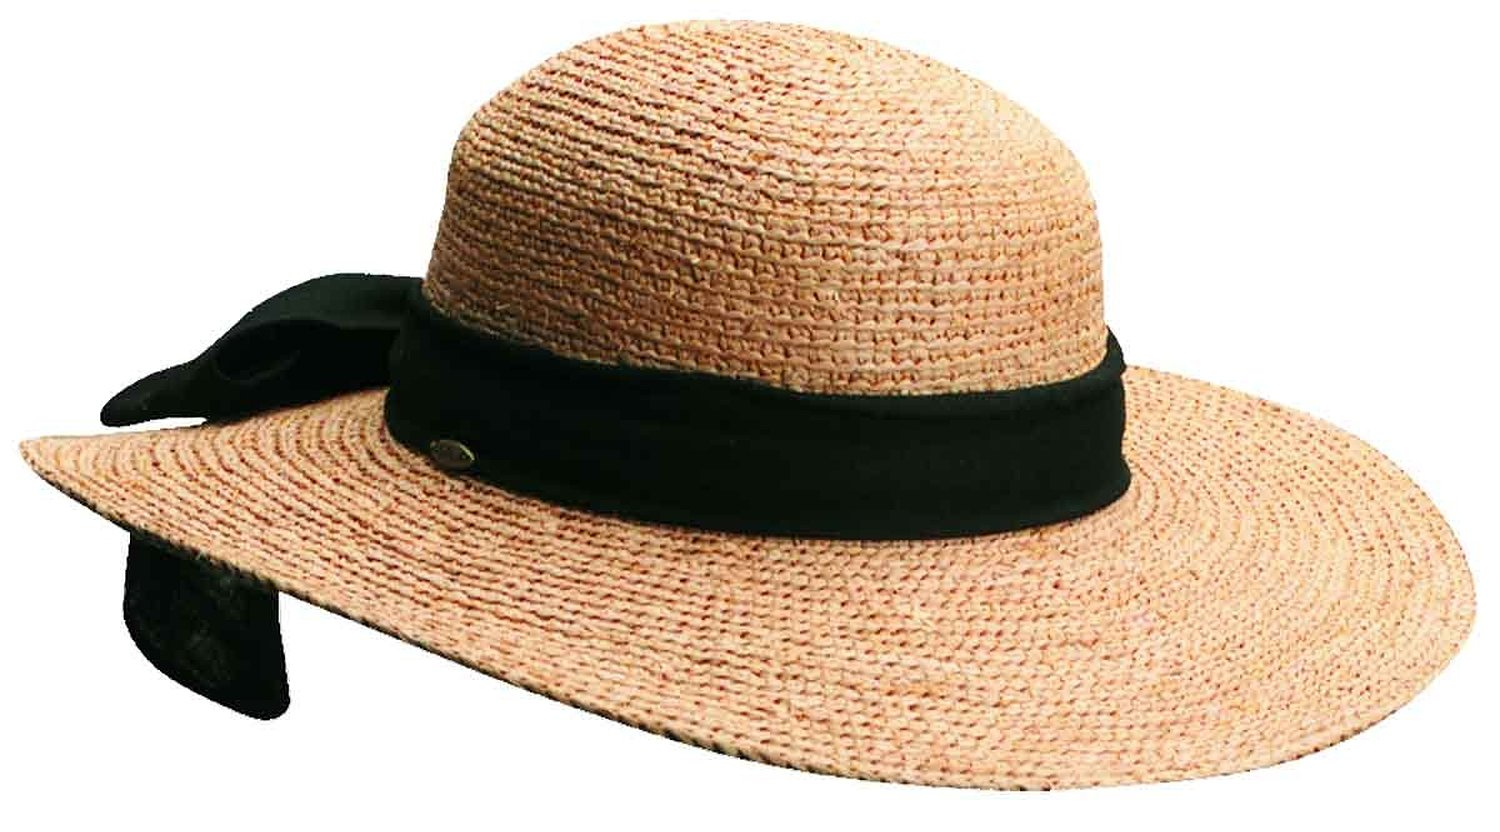 a0923821afe79 Scala Collezione Women s Raffia Bow Hat BEIGE O S at Amazon Women